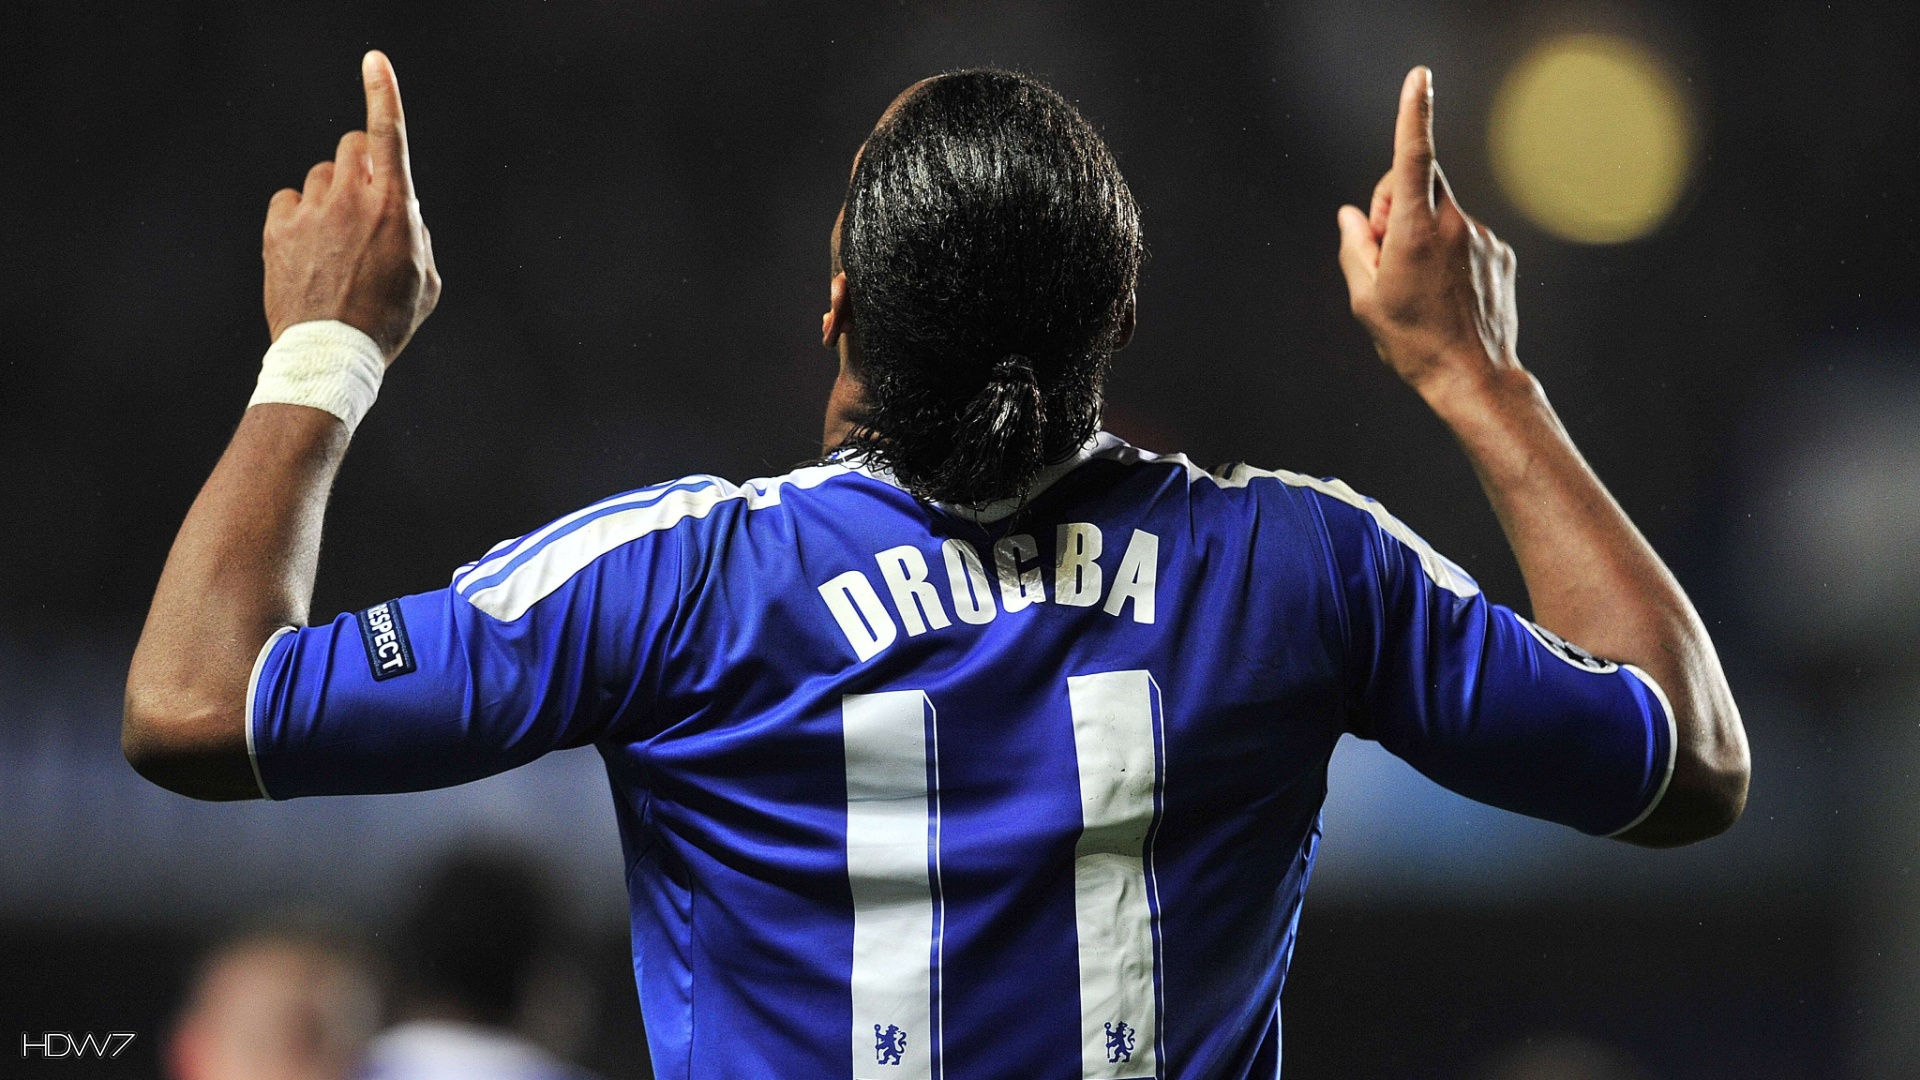 drogba number 11 chelsea HD wallpaper gallery 241 1920x1080